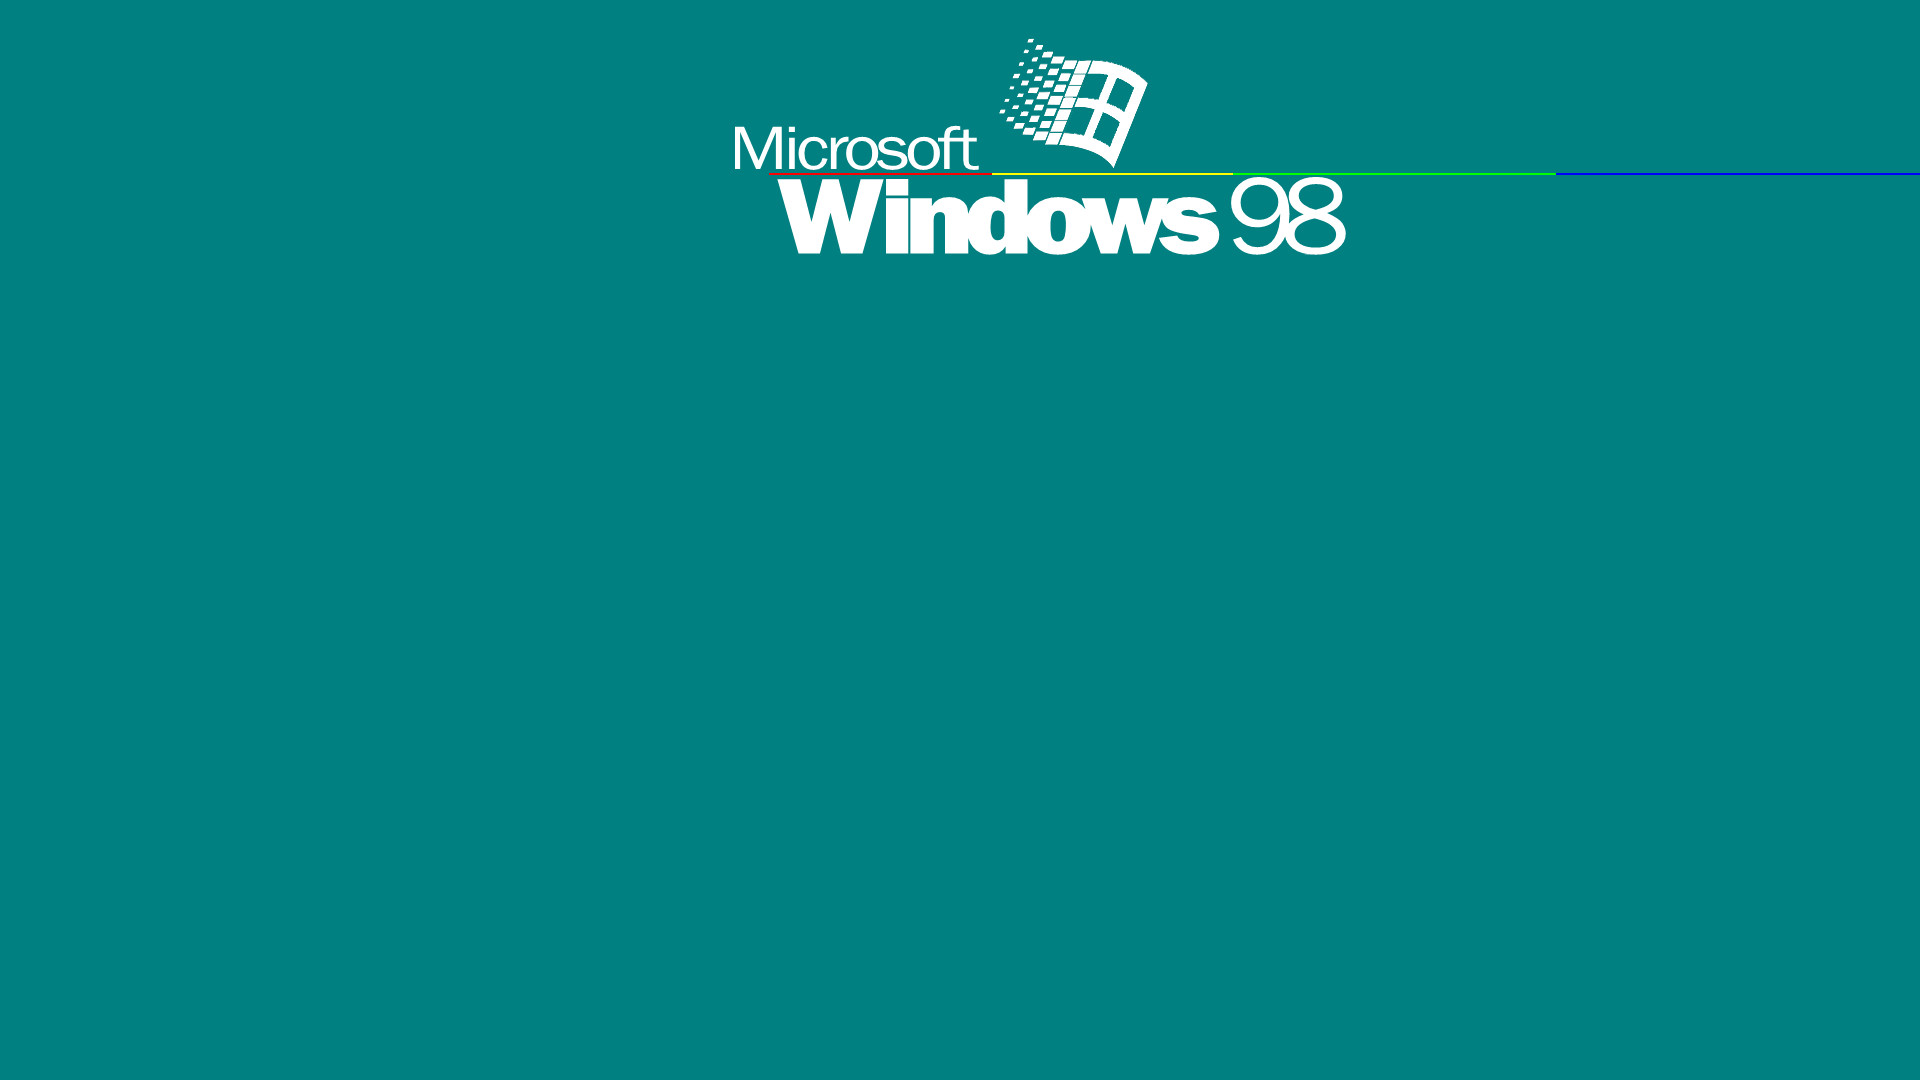 Wallpapers For > Windows 98 Wallpaper